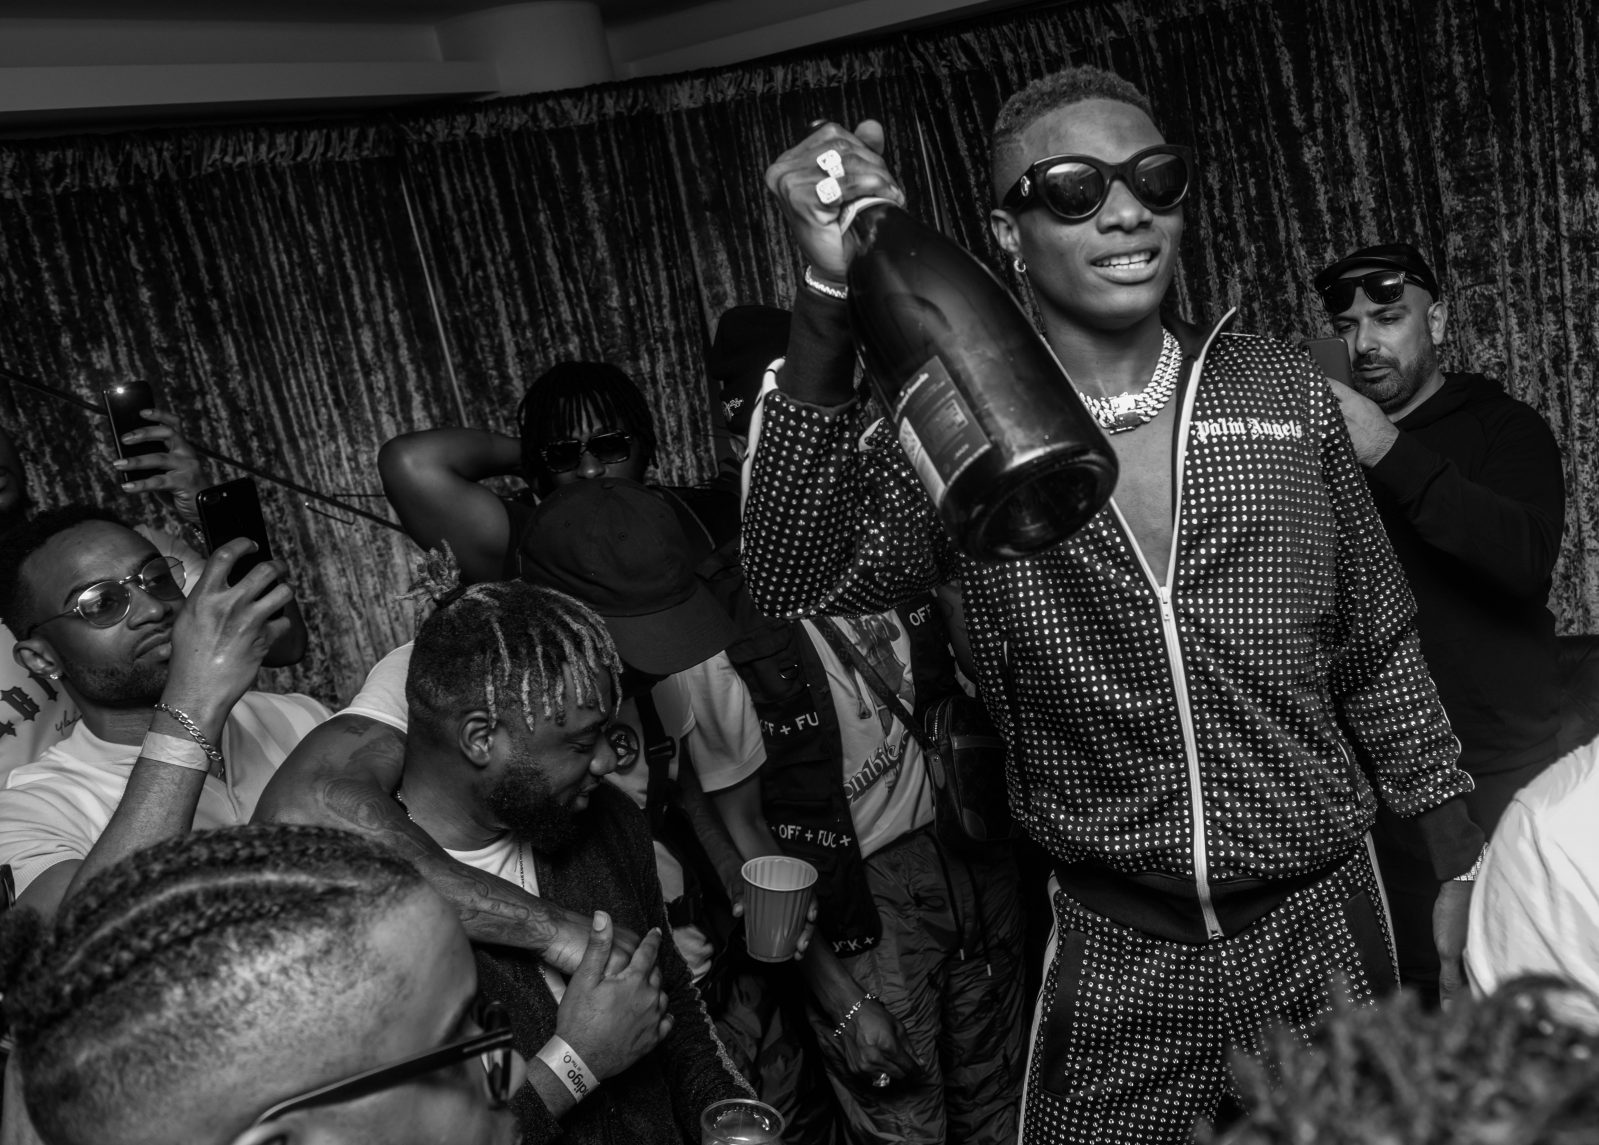 o2 Arena, London, United Kingdom. 26th May 2018. Wizkid in his dressing room during AFROREPUBLIK festival at The O2 Arena.